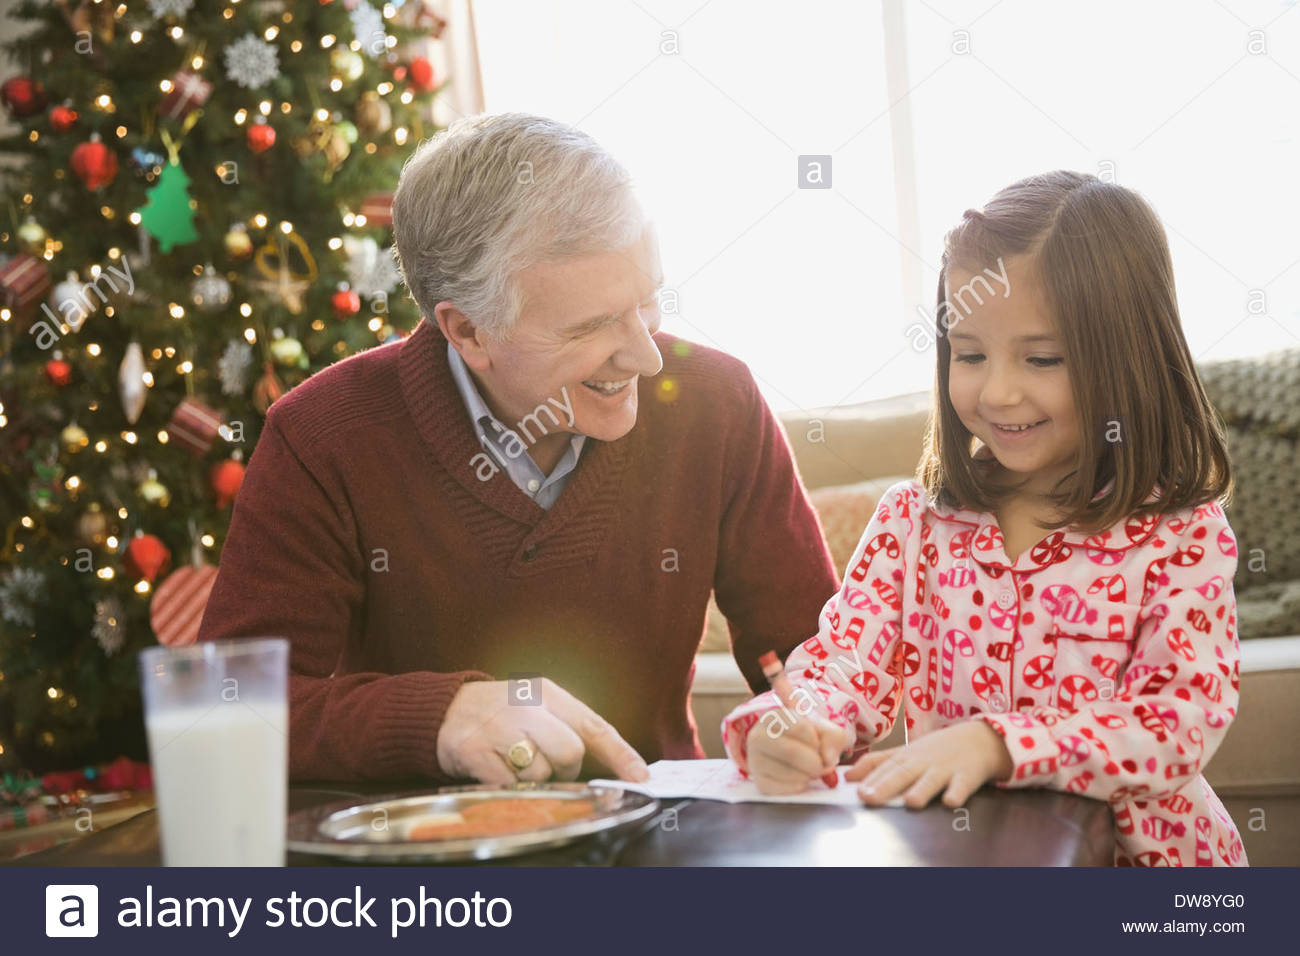 Grandfather helping girl write letter to Santa Claus - Stock Image